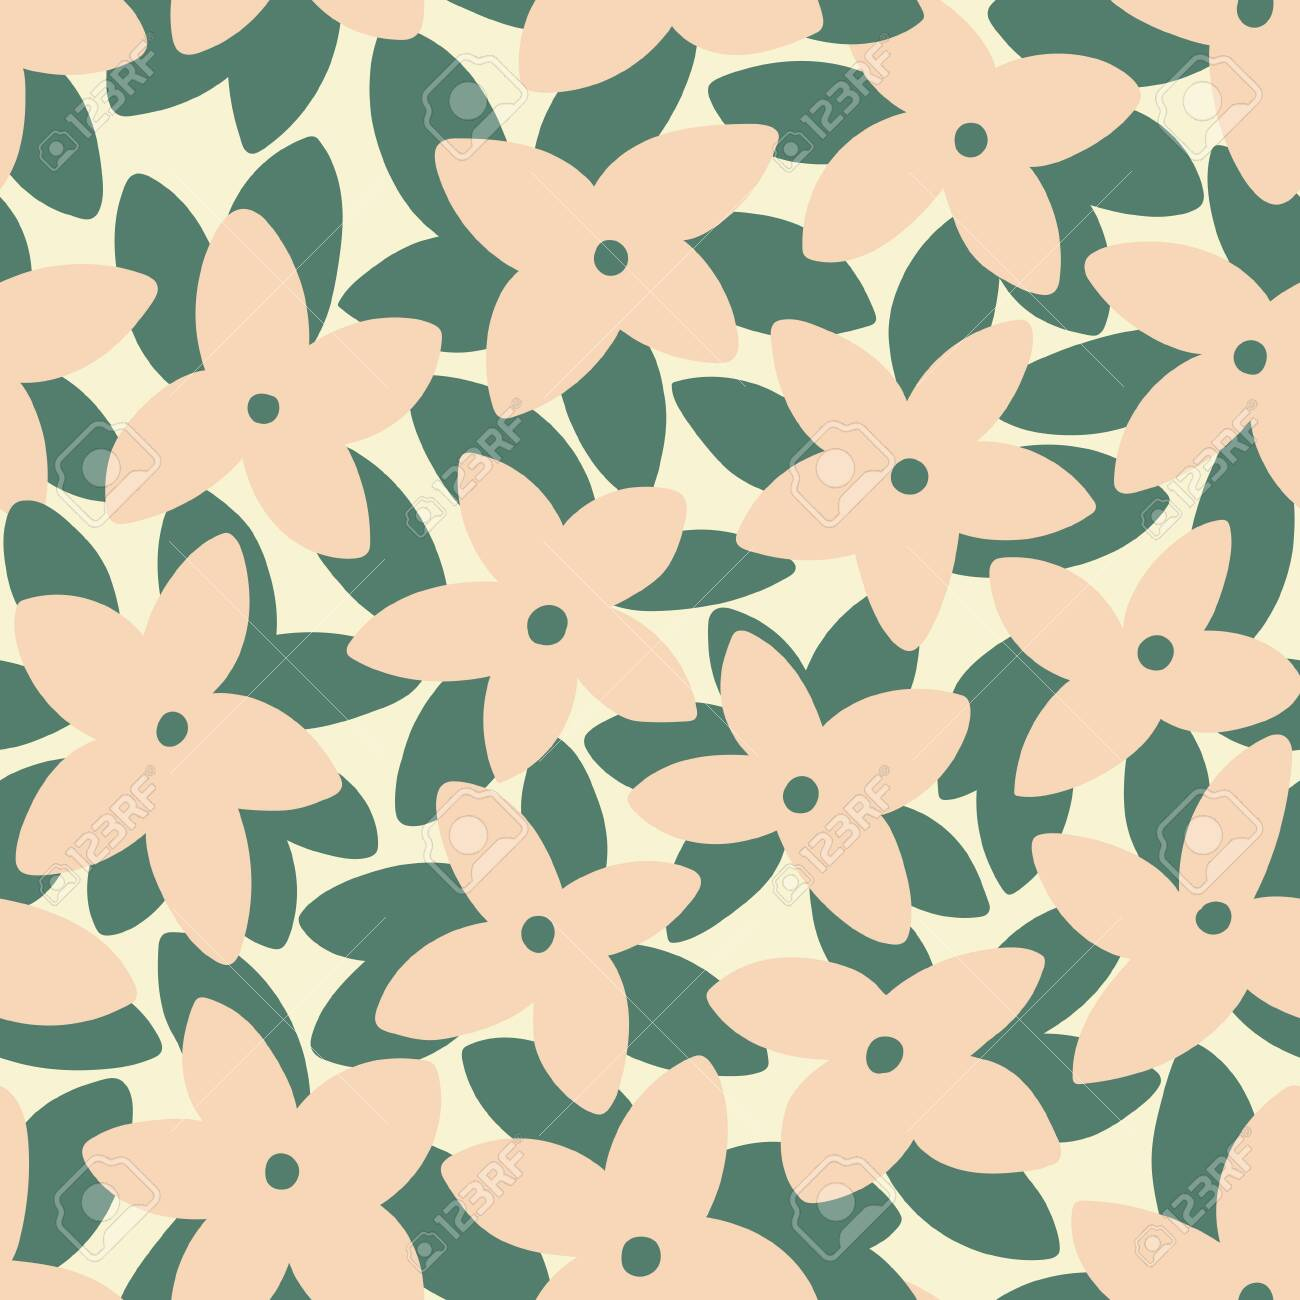 Pink frangipani (plumeria) flowers and palm leaves seamless pattern. Tropical background. Retro vector illustration - 144865743